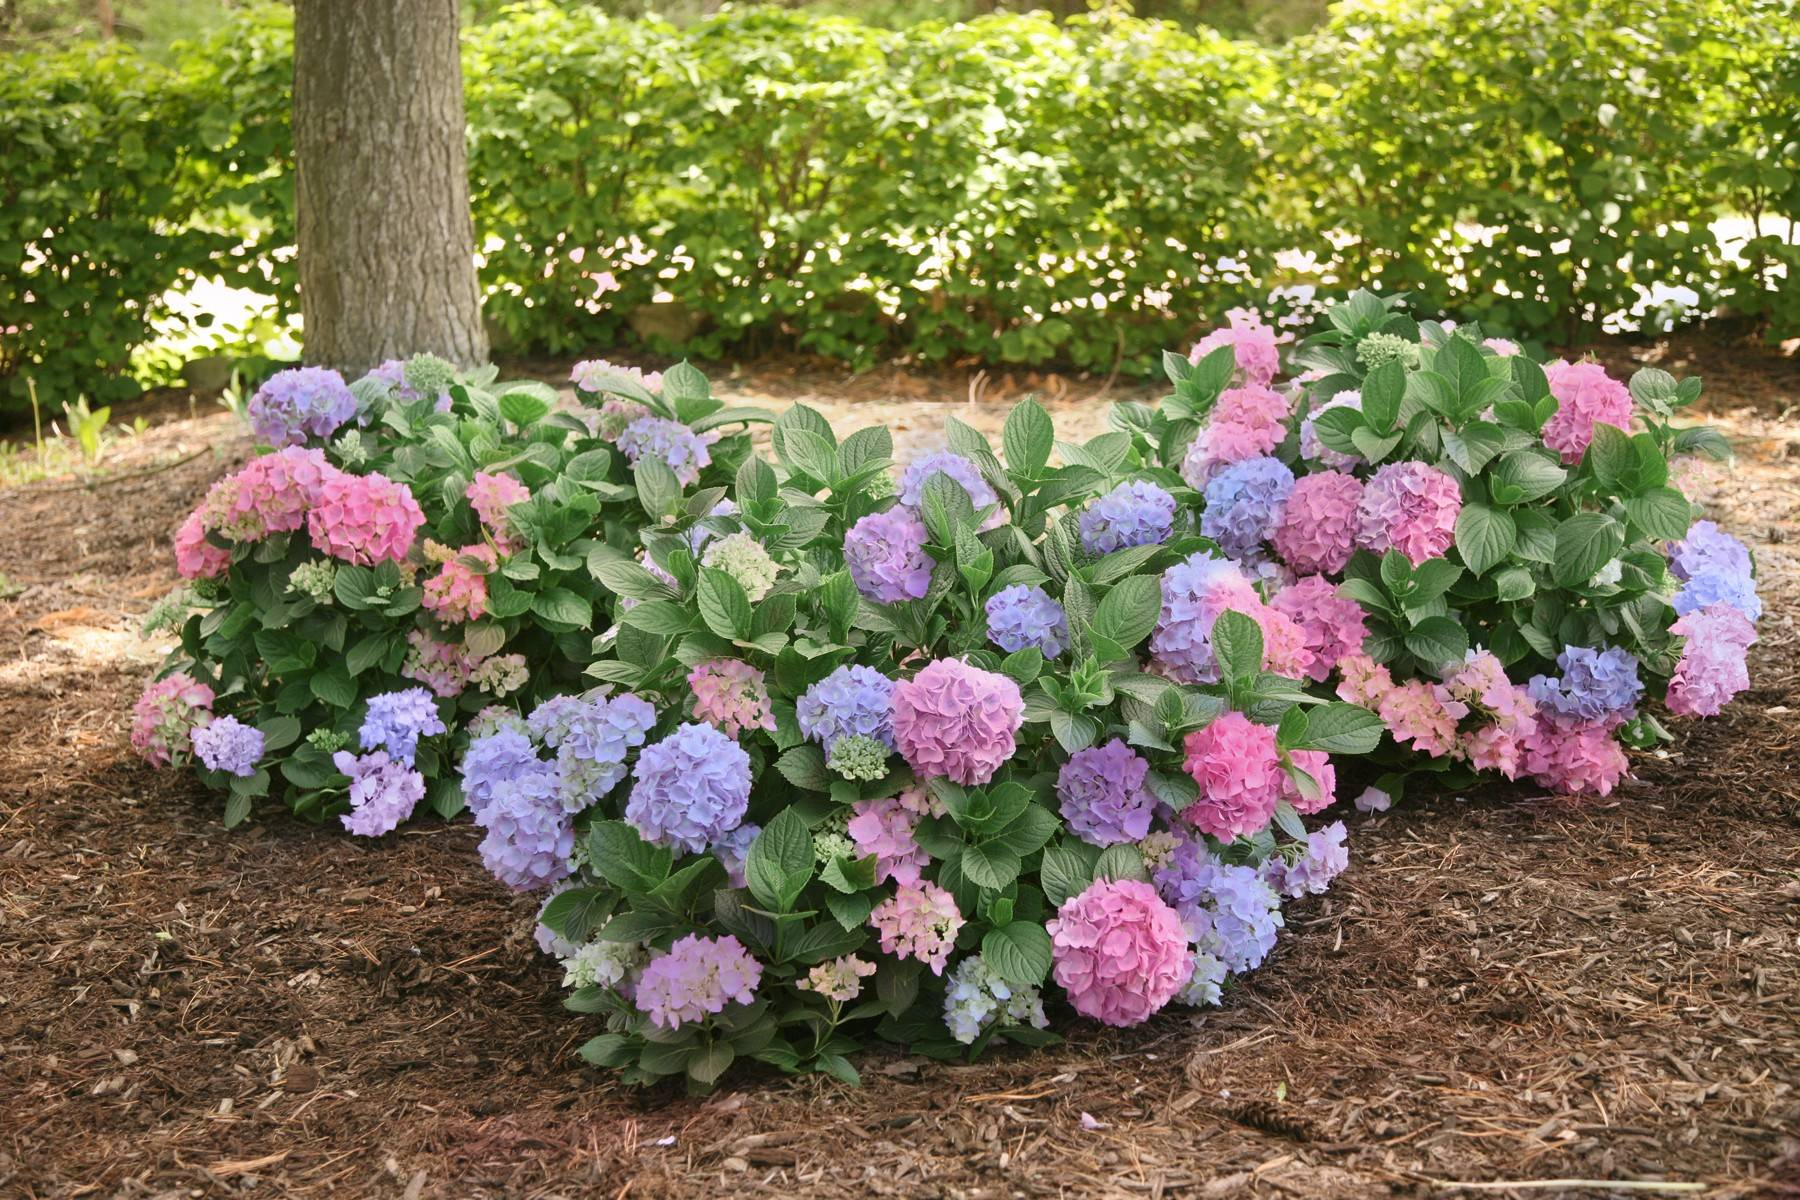 LA Dreamin' hydrangea blooms with pink and blue flowers at the same time.